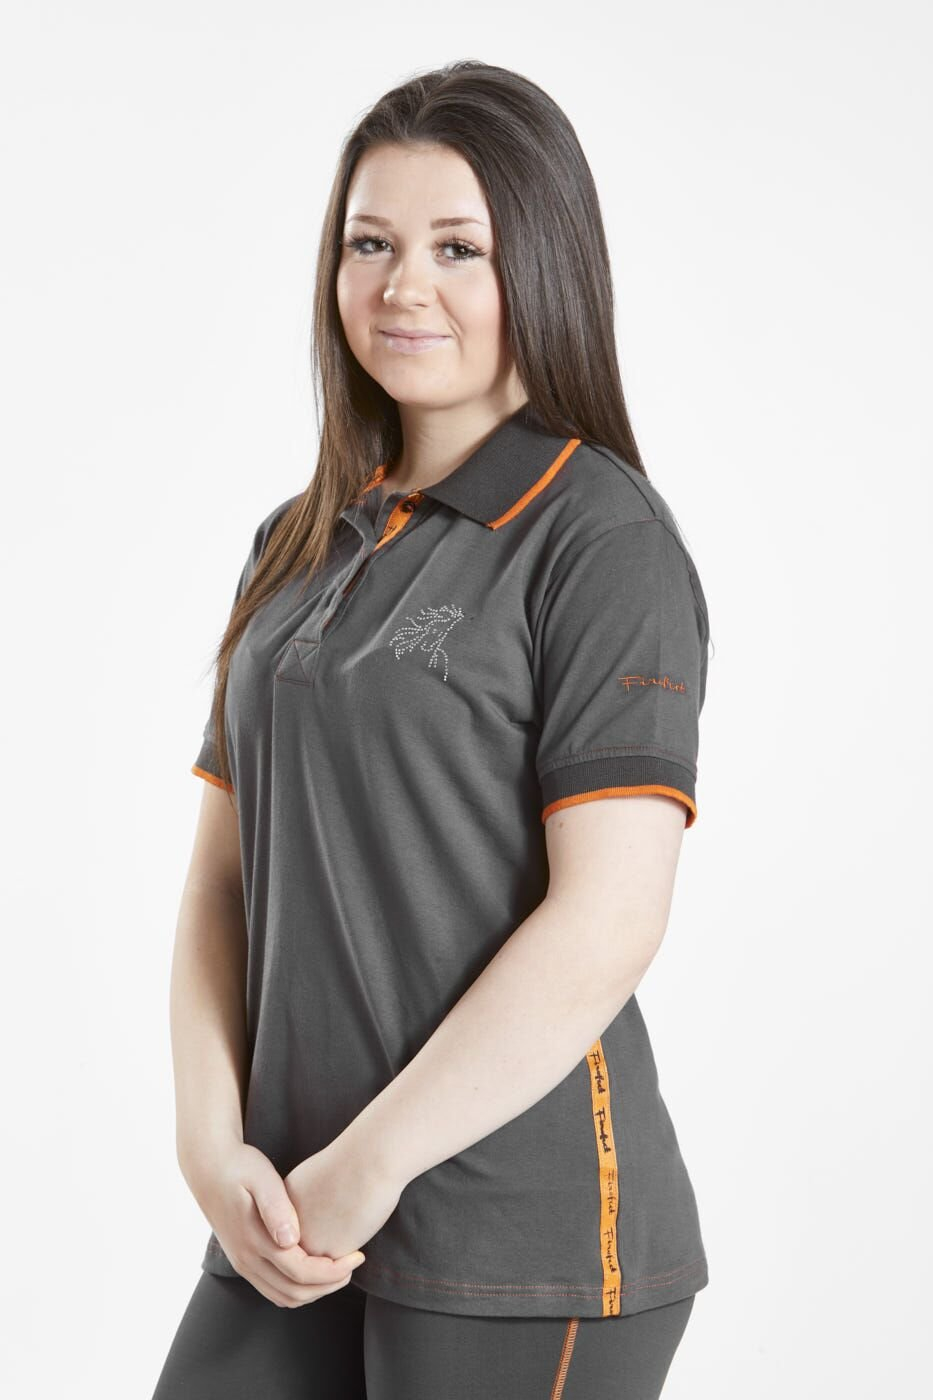 Firefoot Childs Crofton Sparkle Logo Polo Top